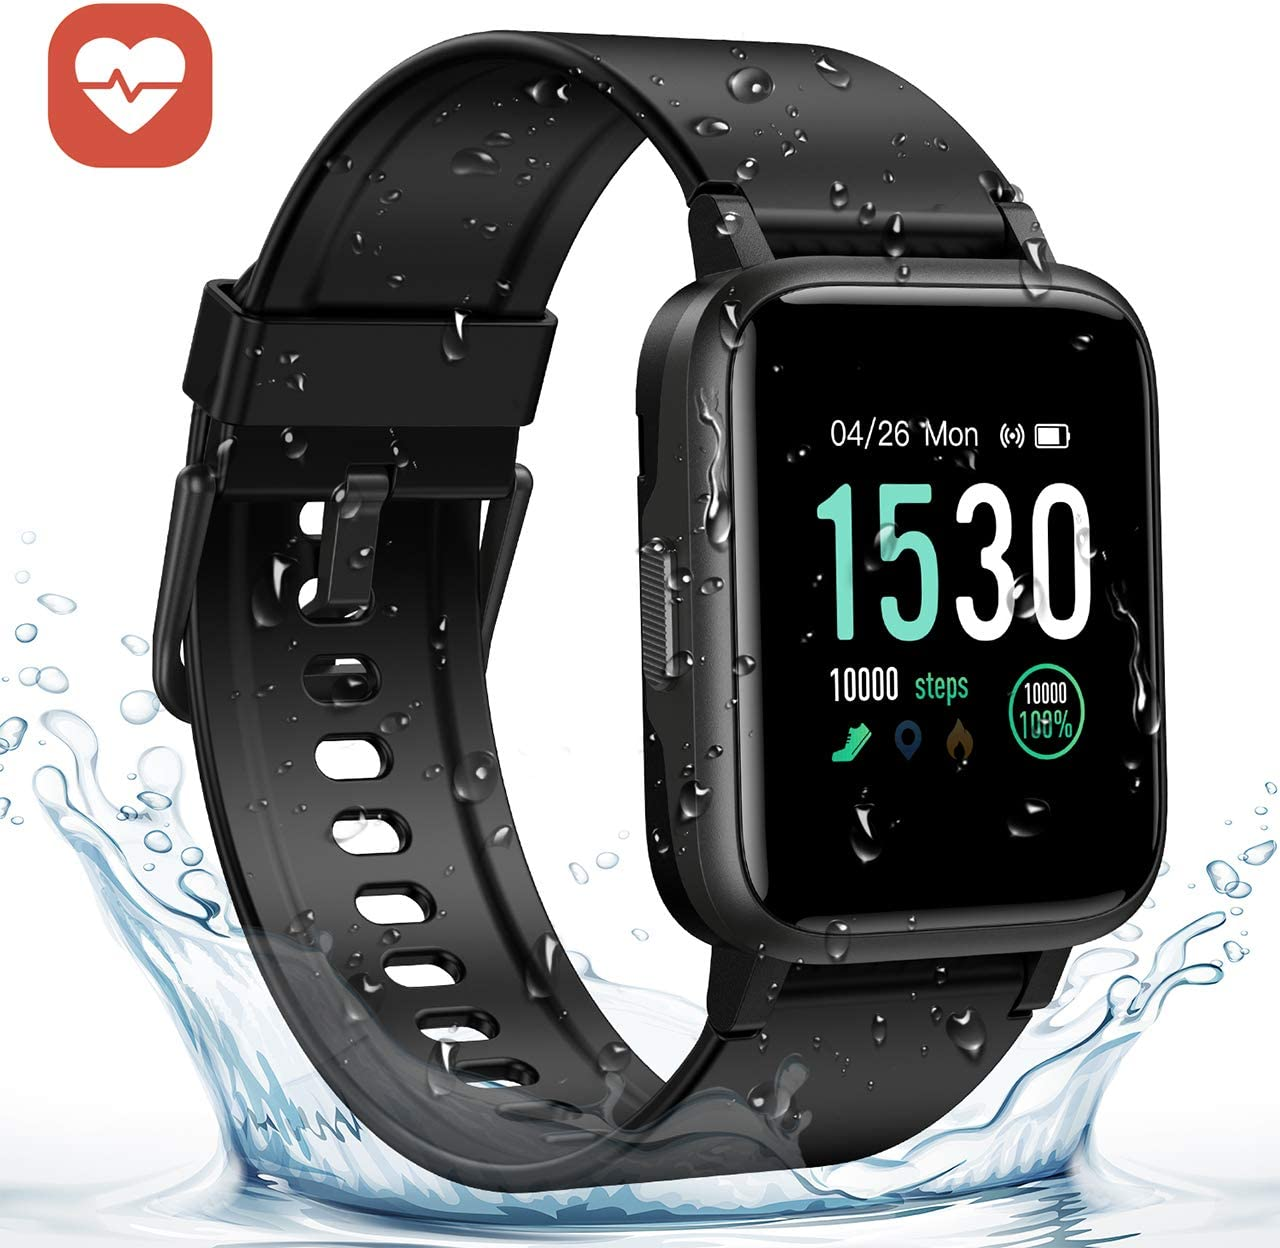 GRM Fitness Tracker with Heart Rate Monitor, Activity Tracker Watch Full 1.3 Color Screen Smart Watch Waterproof Sleep Monitor Step Calorie Counter, Pedometer for Women, Men and Kids Black